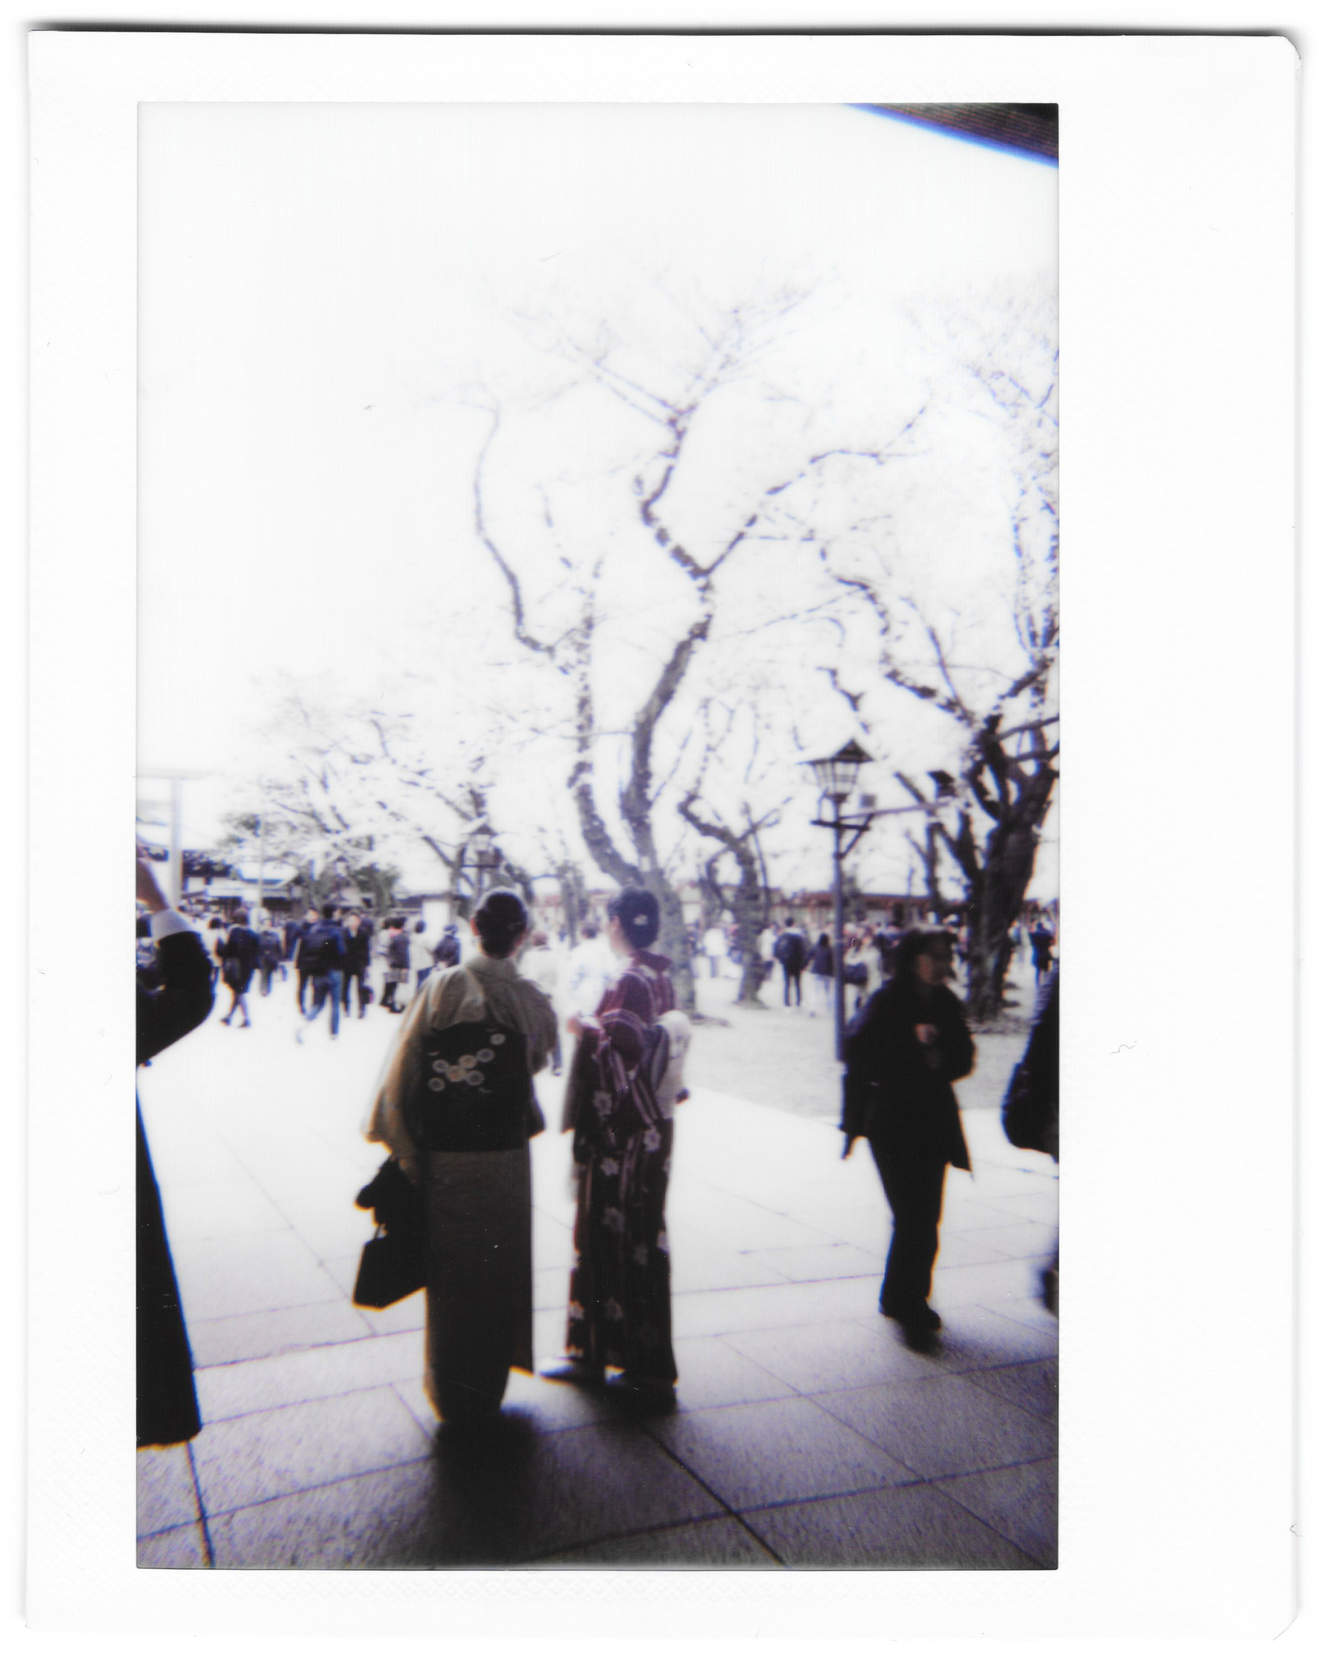 "Instant photo for Day 186 of ""A Year in an Instant"" by Nuno Coelho Santos"